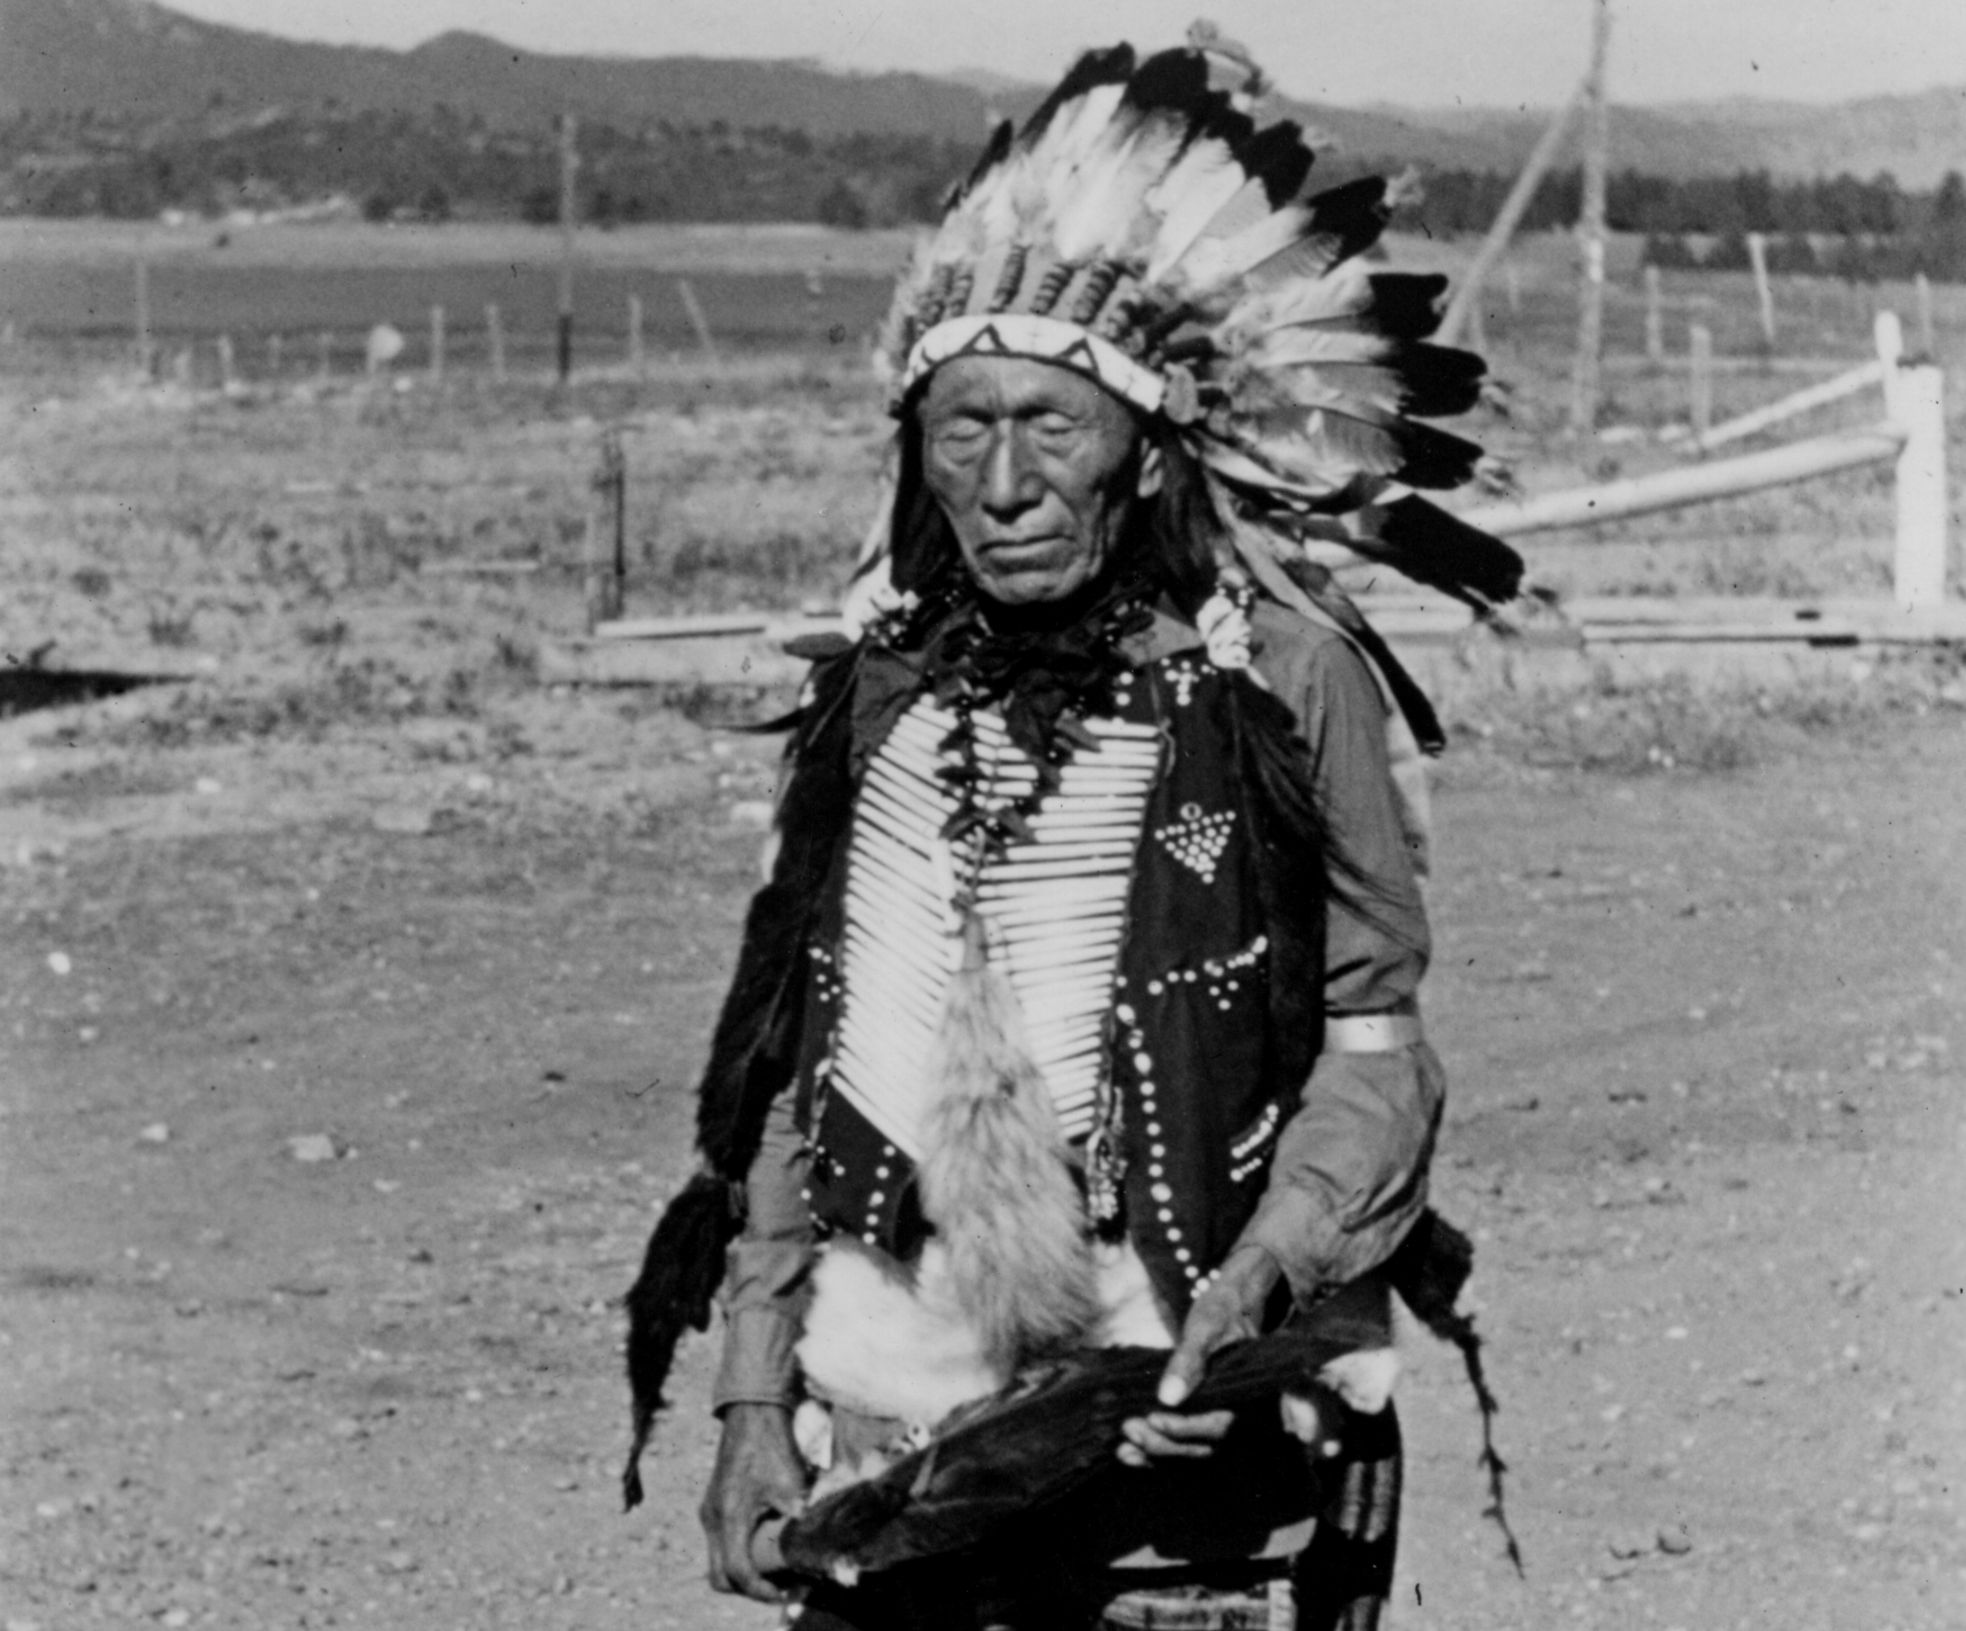 The native american holy man who did not surrender all to the